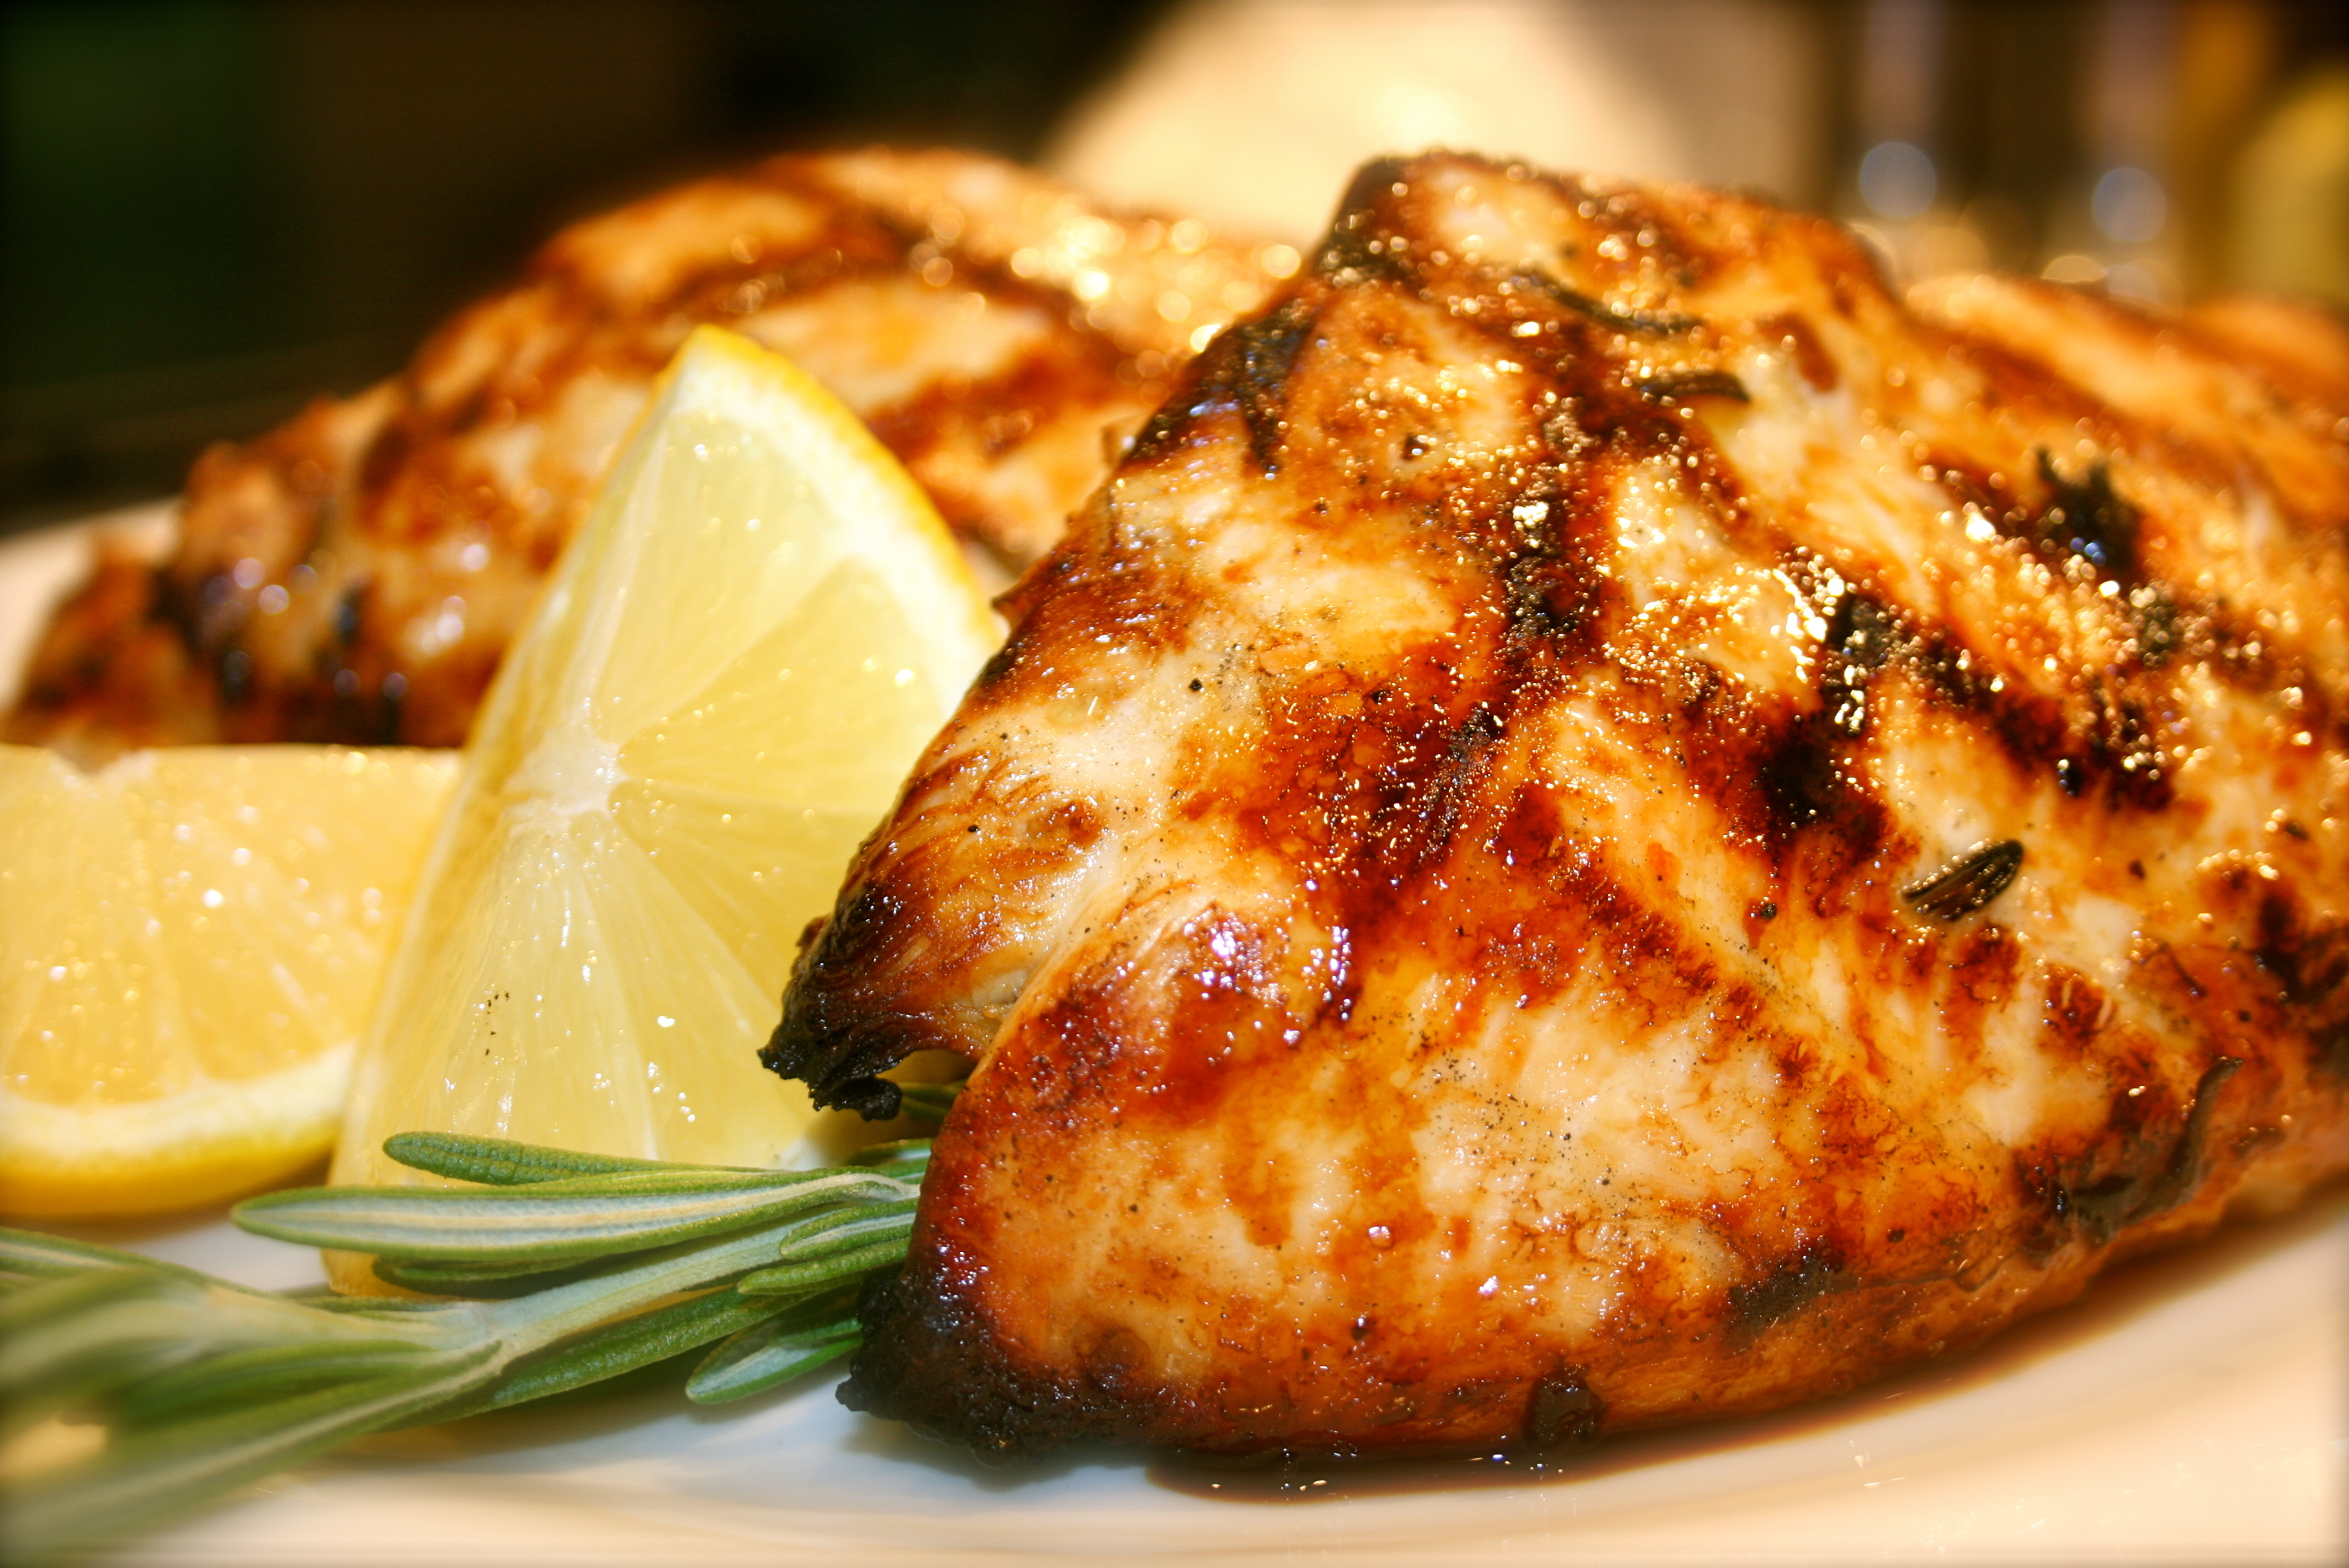 Grilled lemon chicken breast recipe shall agree